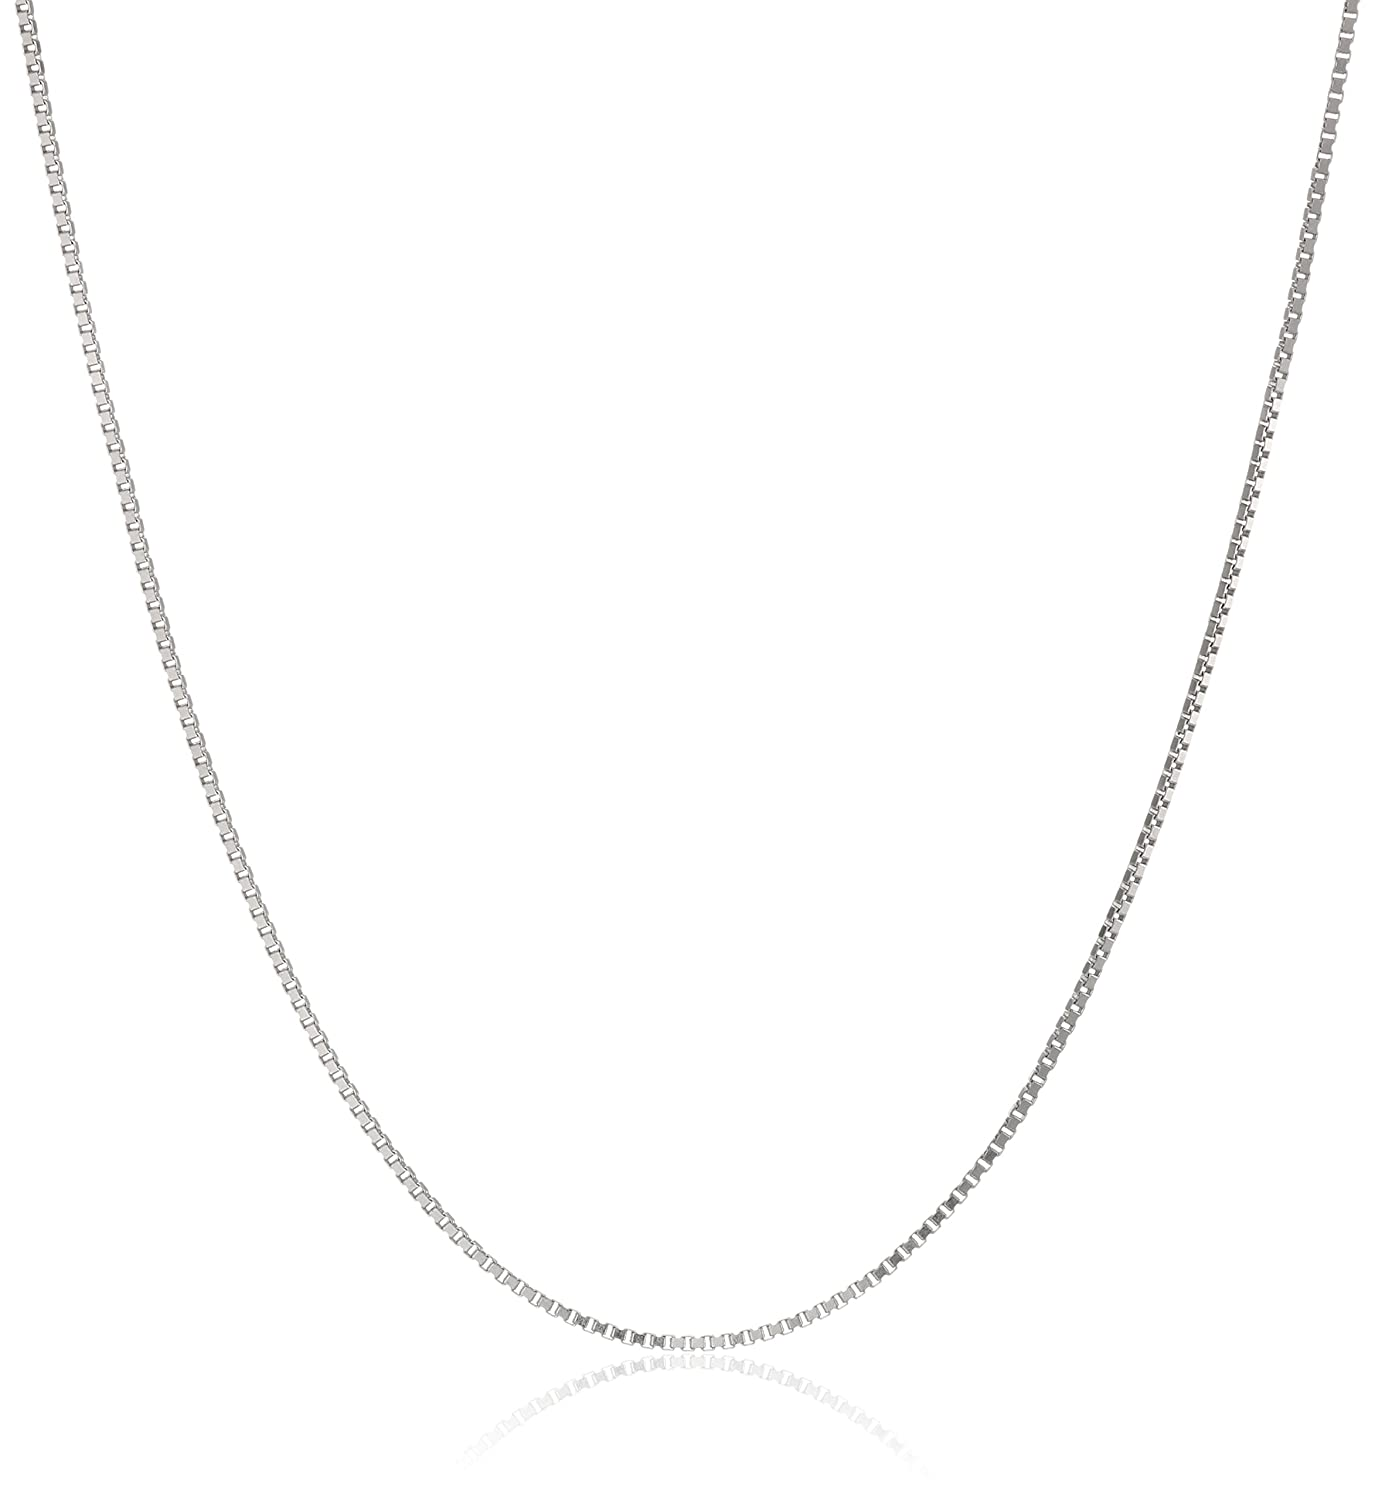 Image result for chain necklace